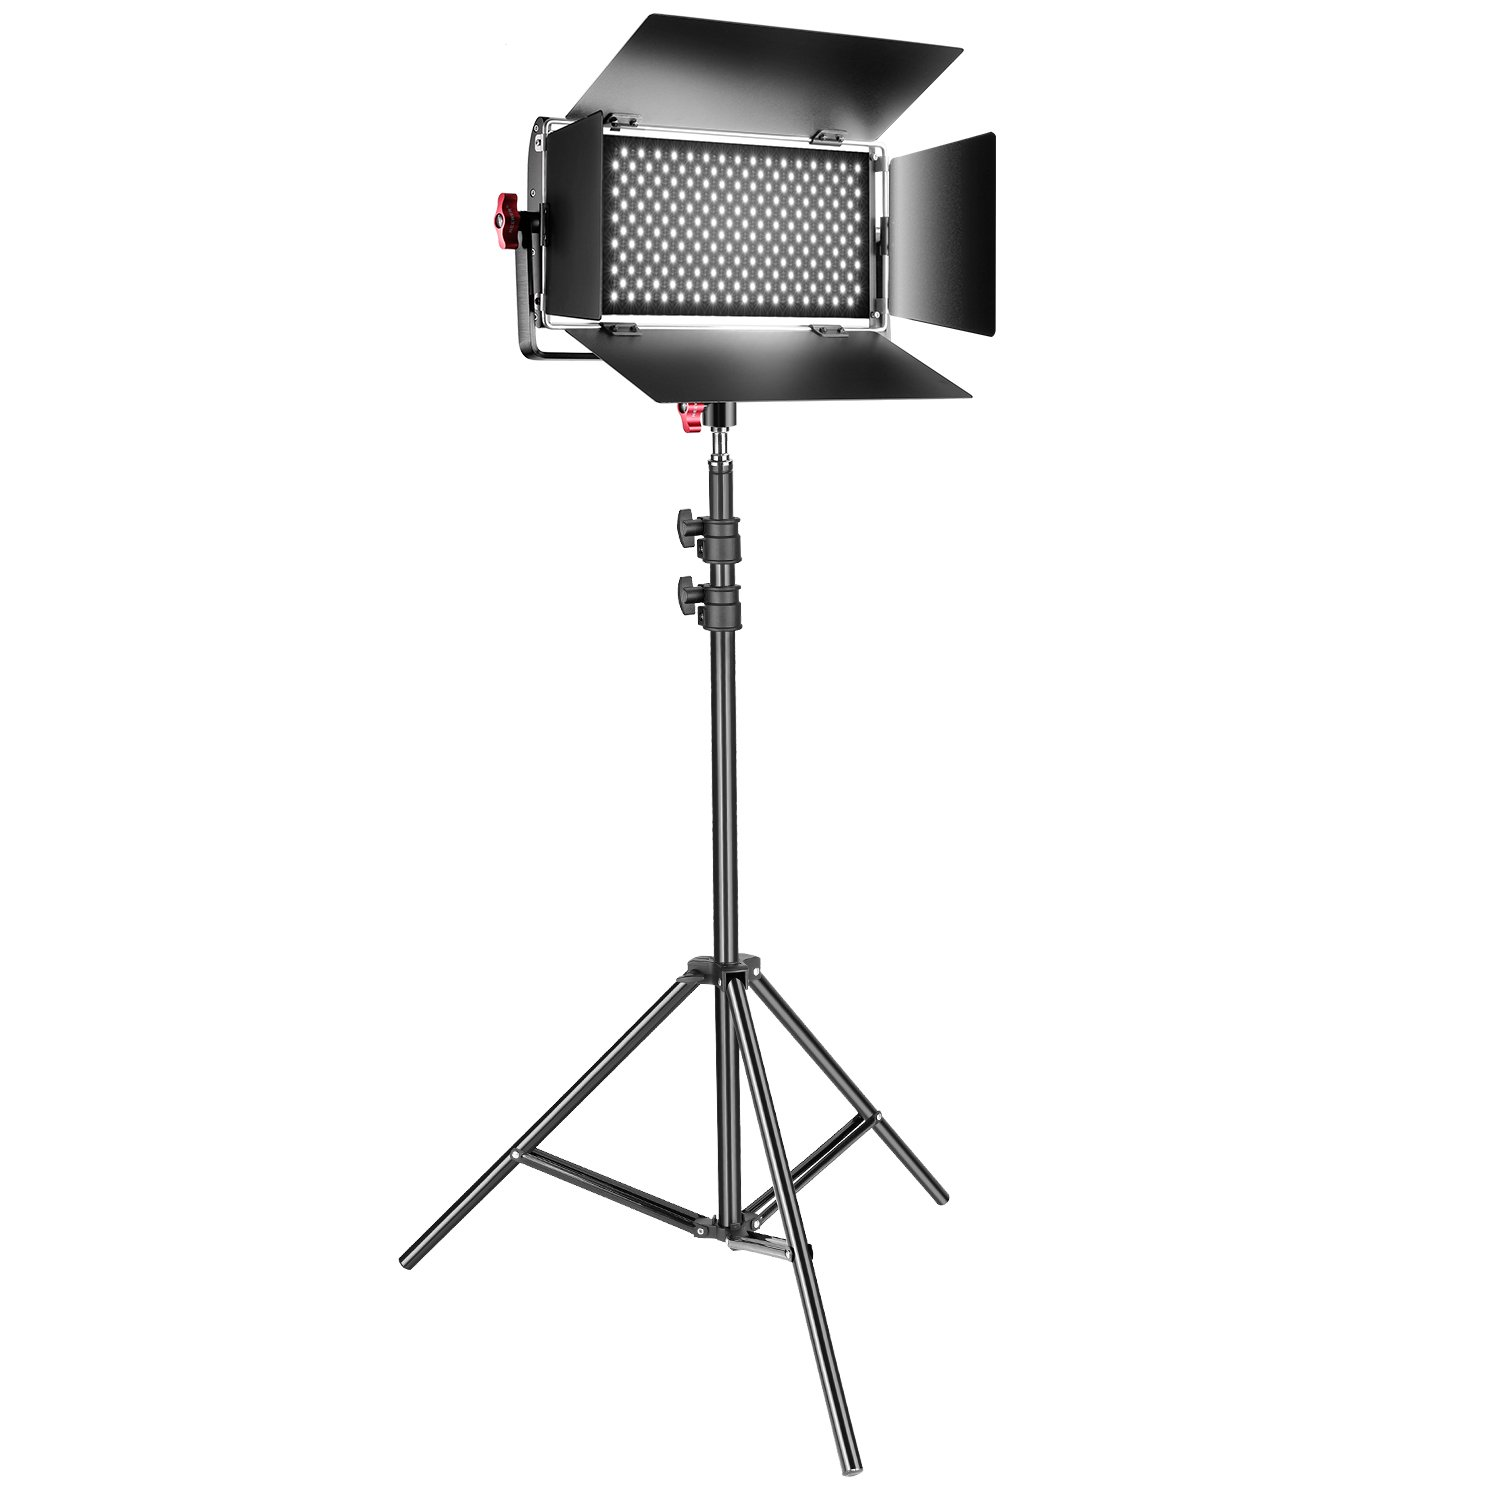 Neewer Dimmable Bi-color SMD LED Video Light and Stand Lighting Kit: 384 Pieces LED Panel with U Bracket and Barndoor, 3200-5600K,CRI 95+,and 78-inch Light Stand for YouTube Photography Video Shooting 90091324@@##1